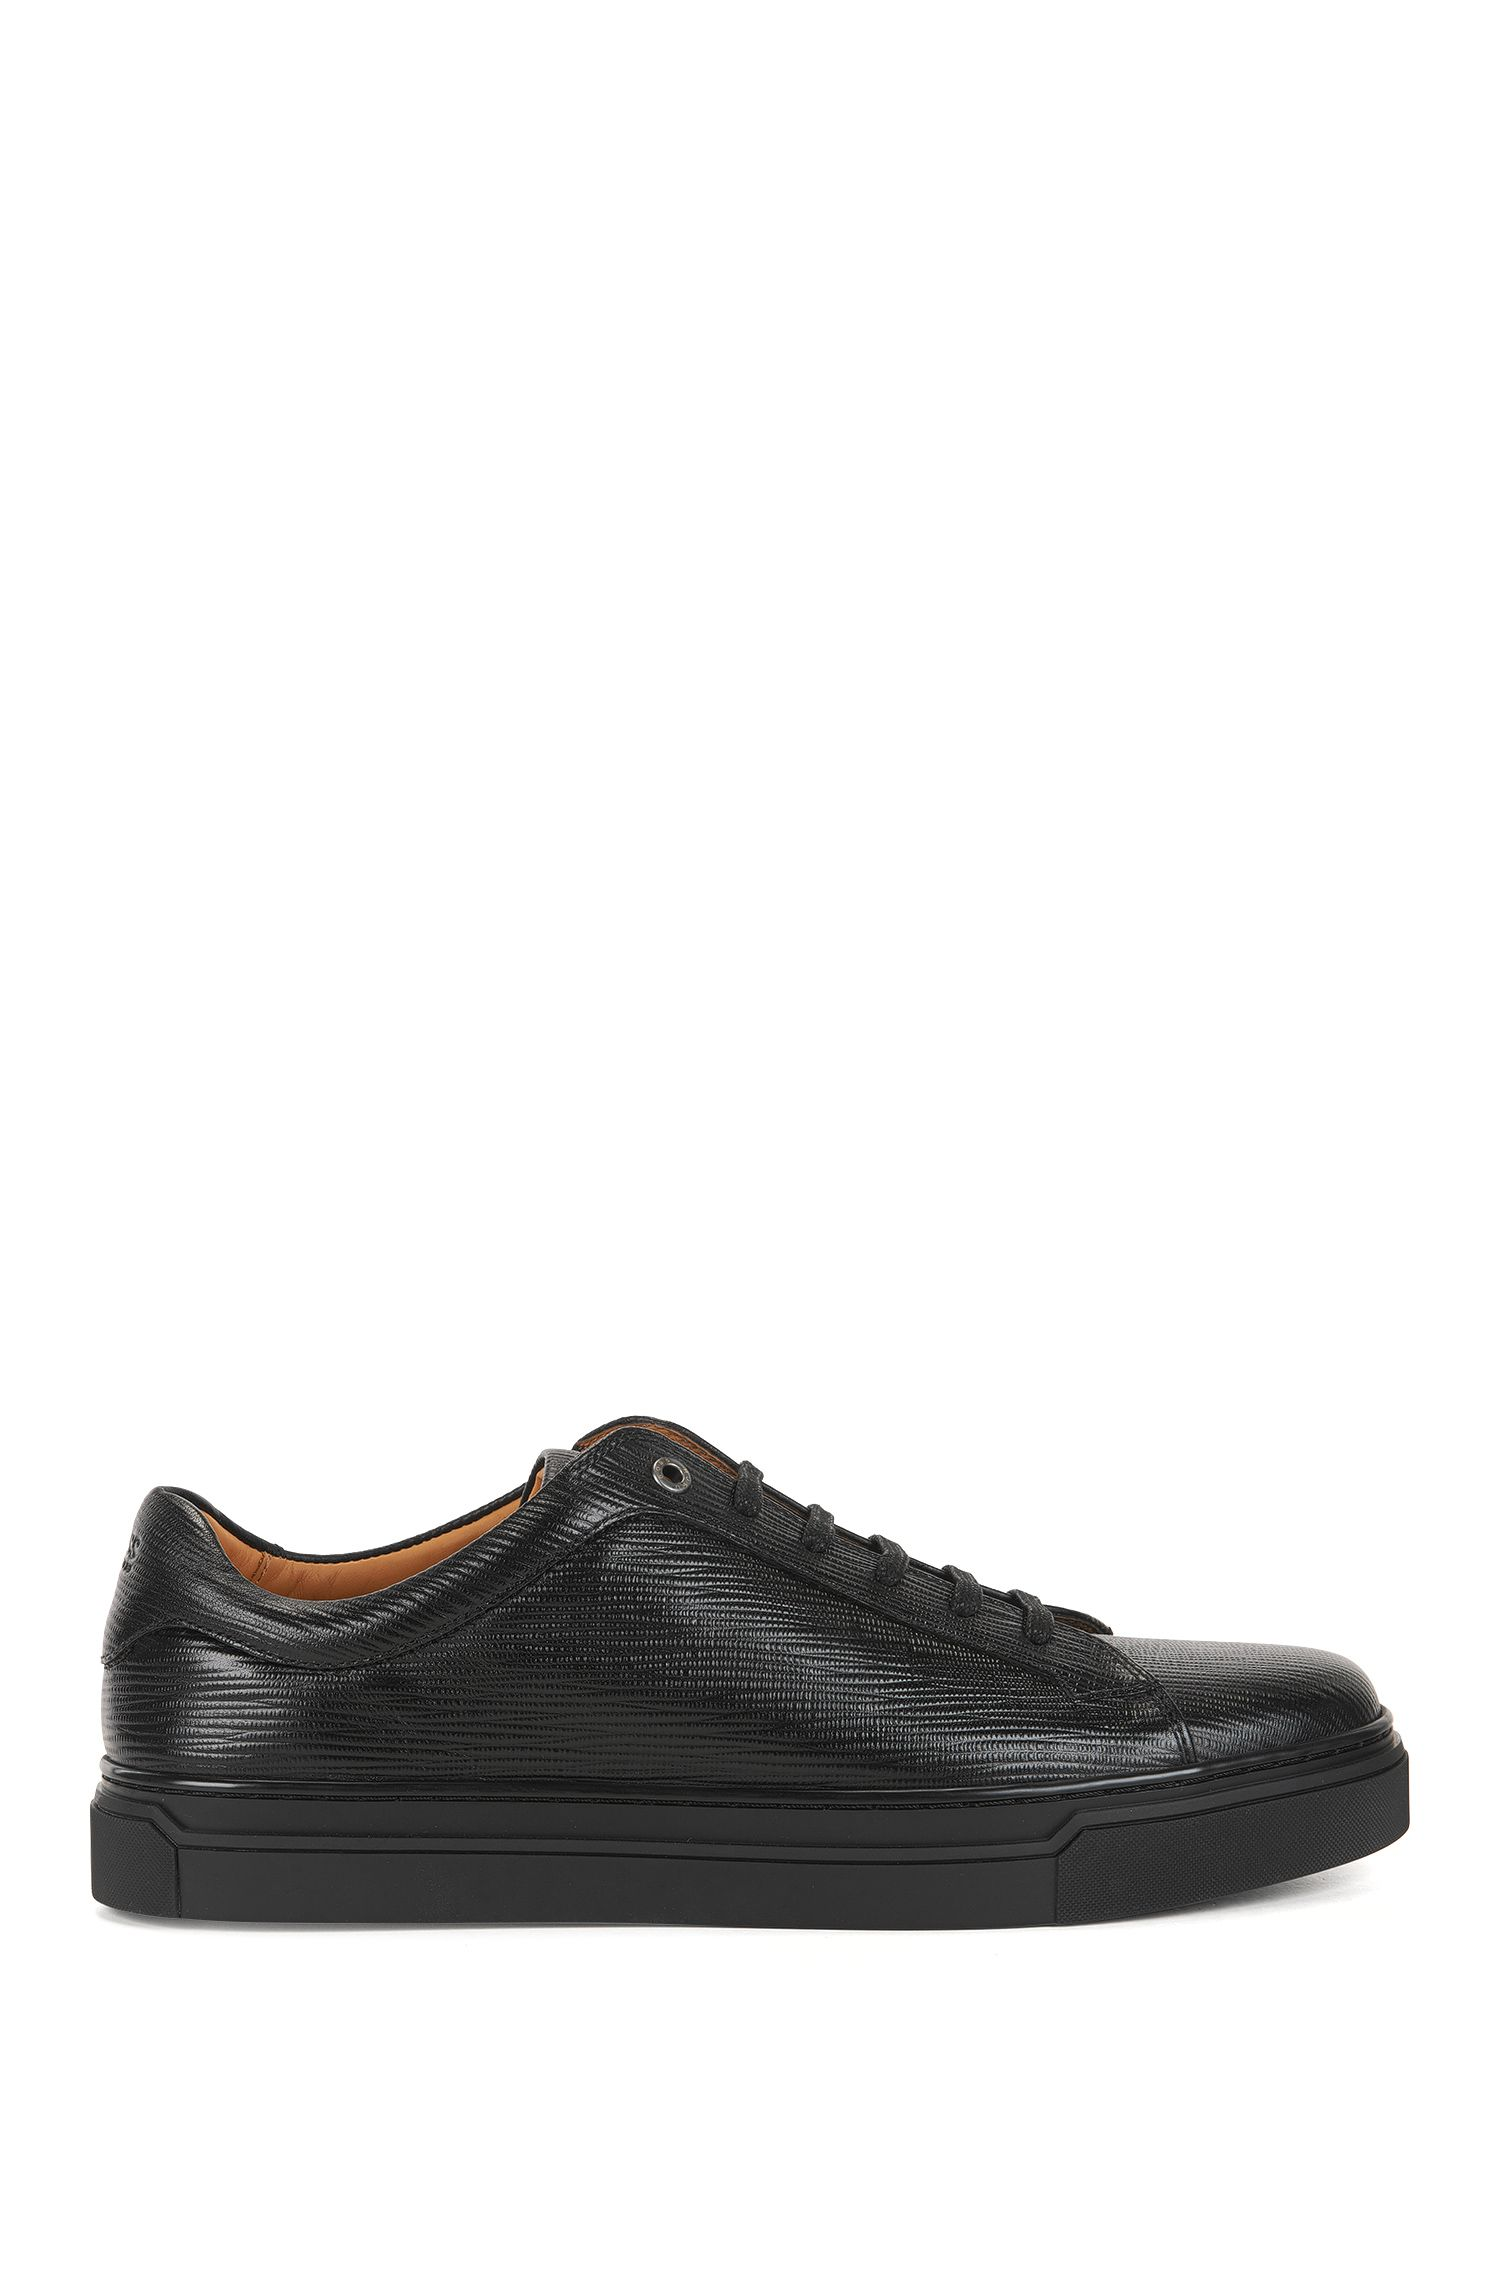 Tennis-style trainers in printed leather